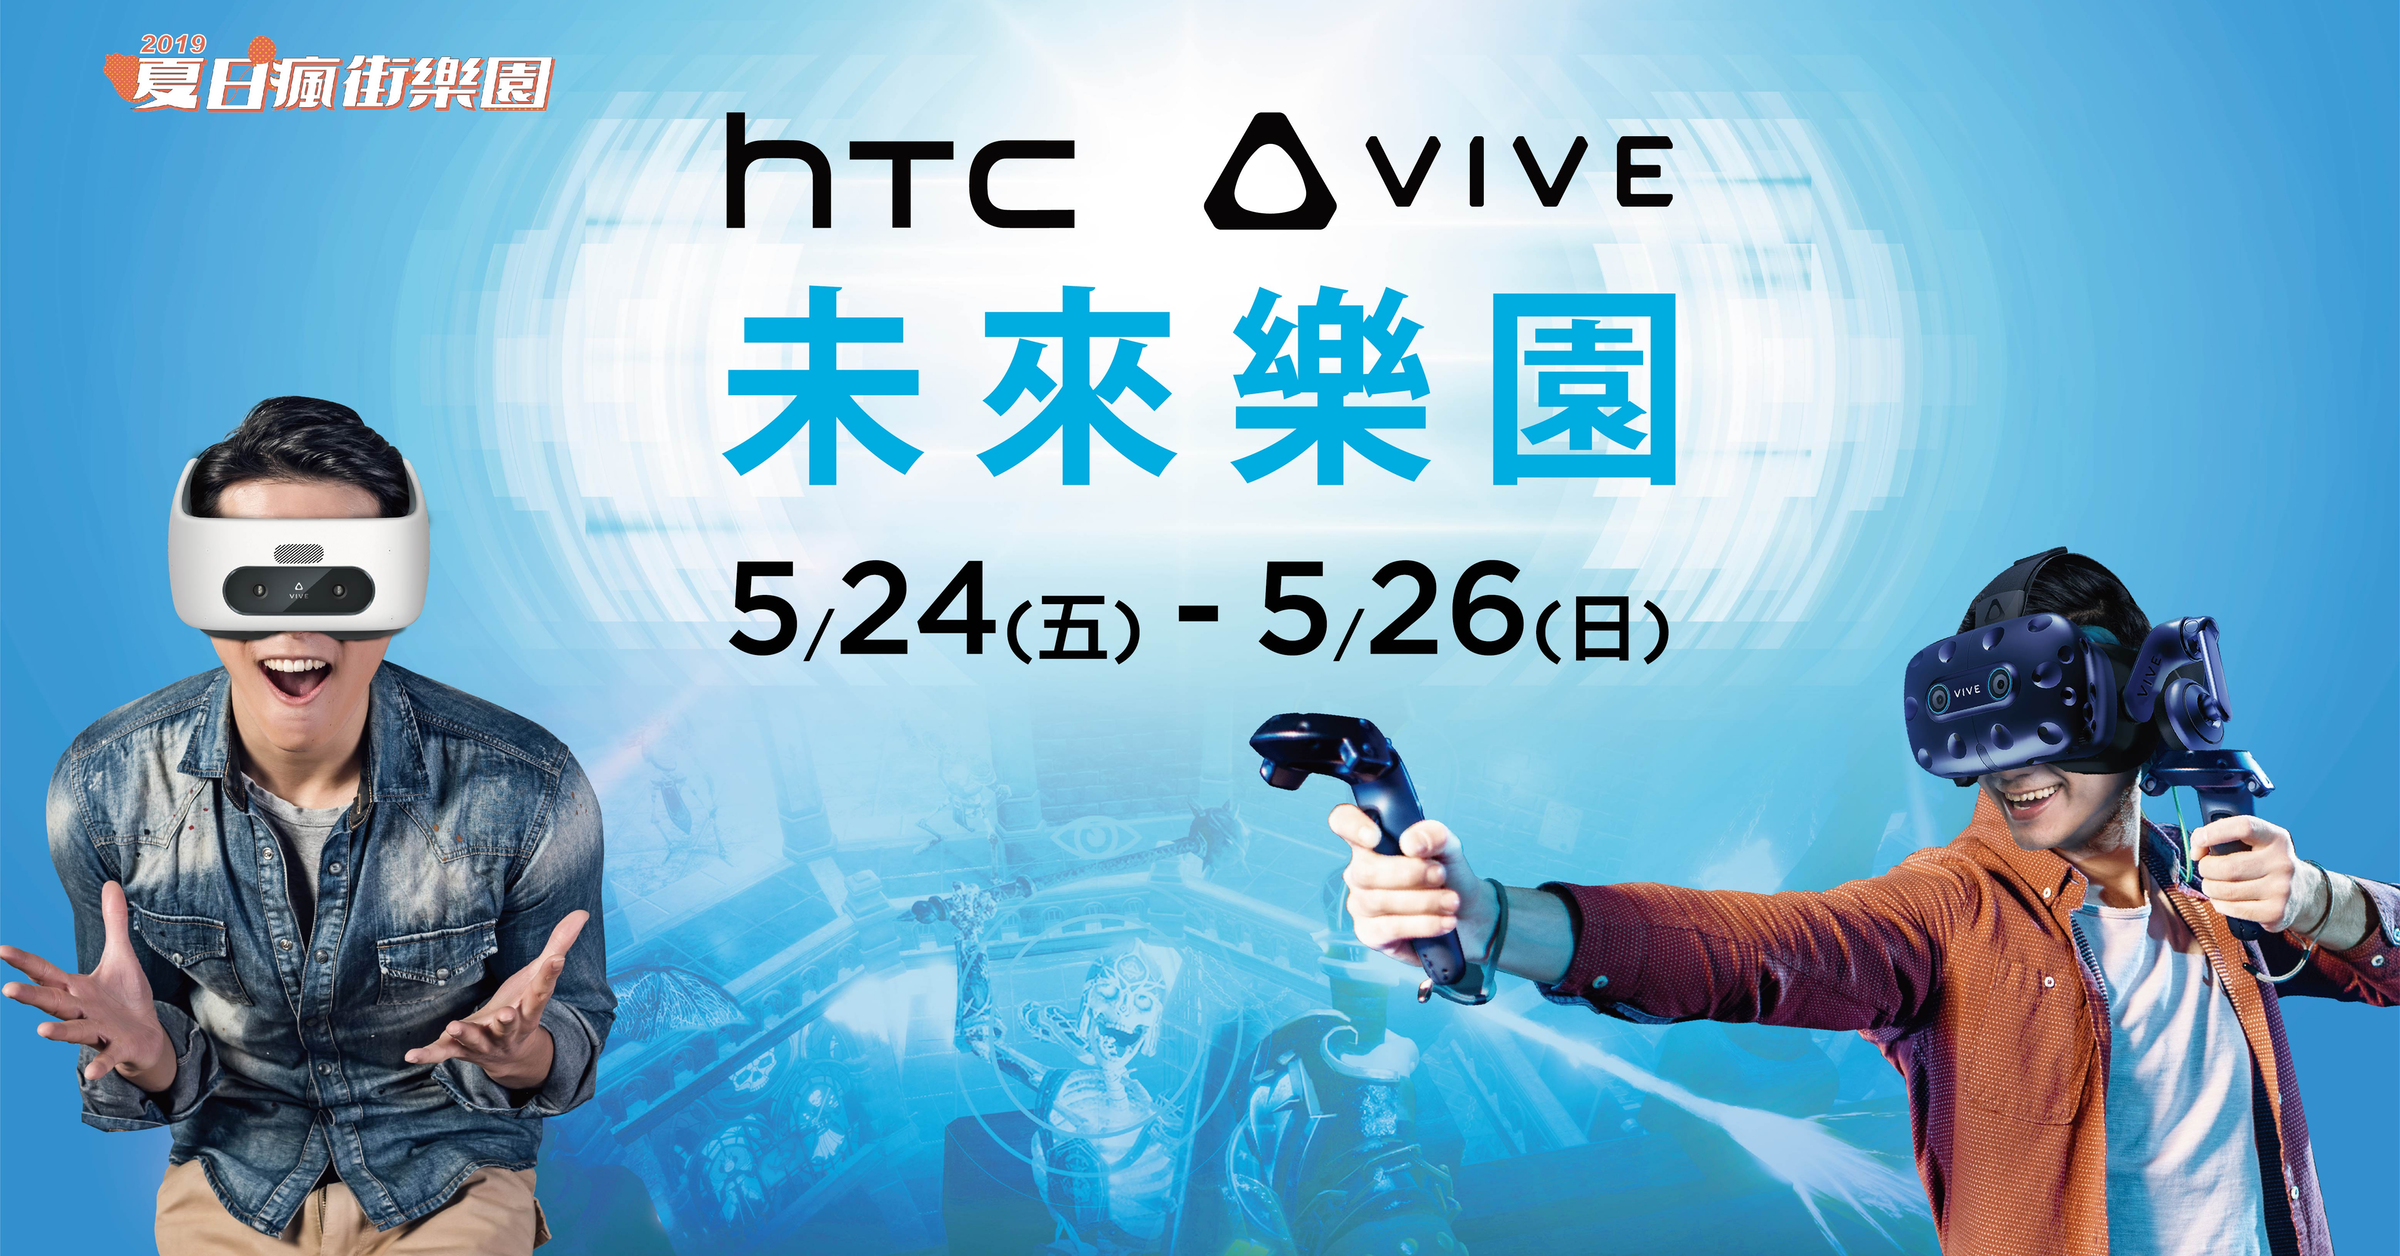 HTC Vive, Virtual reality, , 八德資訊商圈, HTC, HTC, 2019, Poster, Computer, TPE:2498, cool, Eyewear, Sky, Poster, Games, Glasses, Recreation, Movie